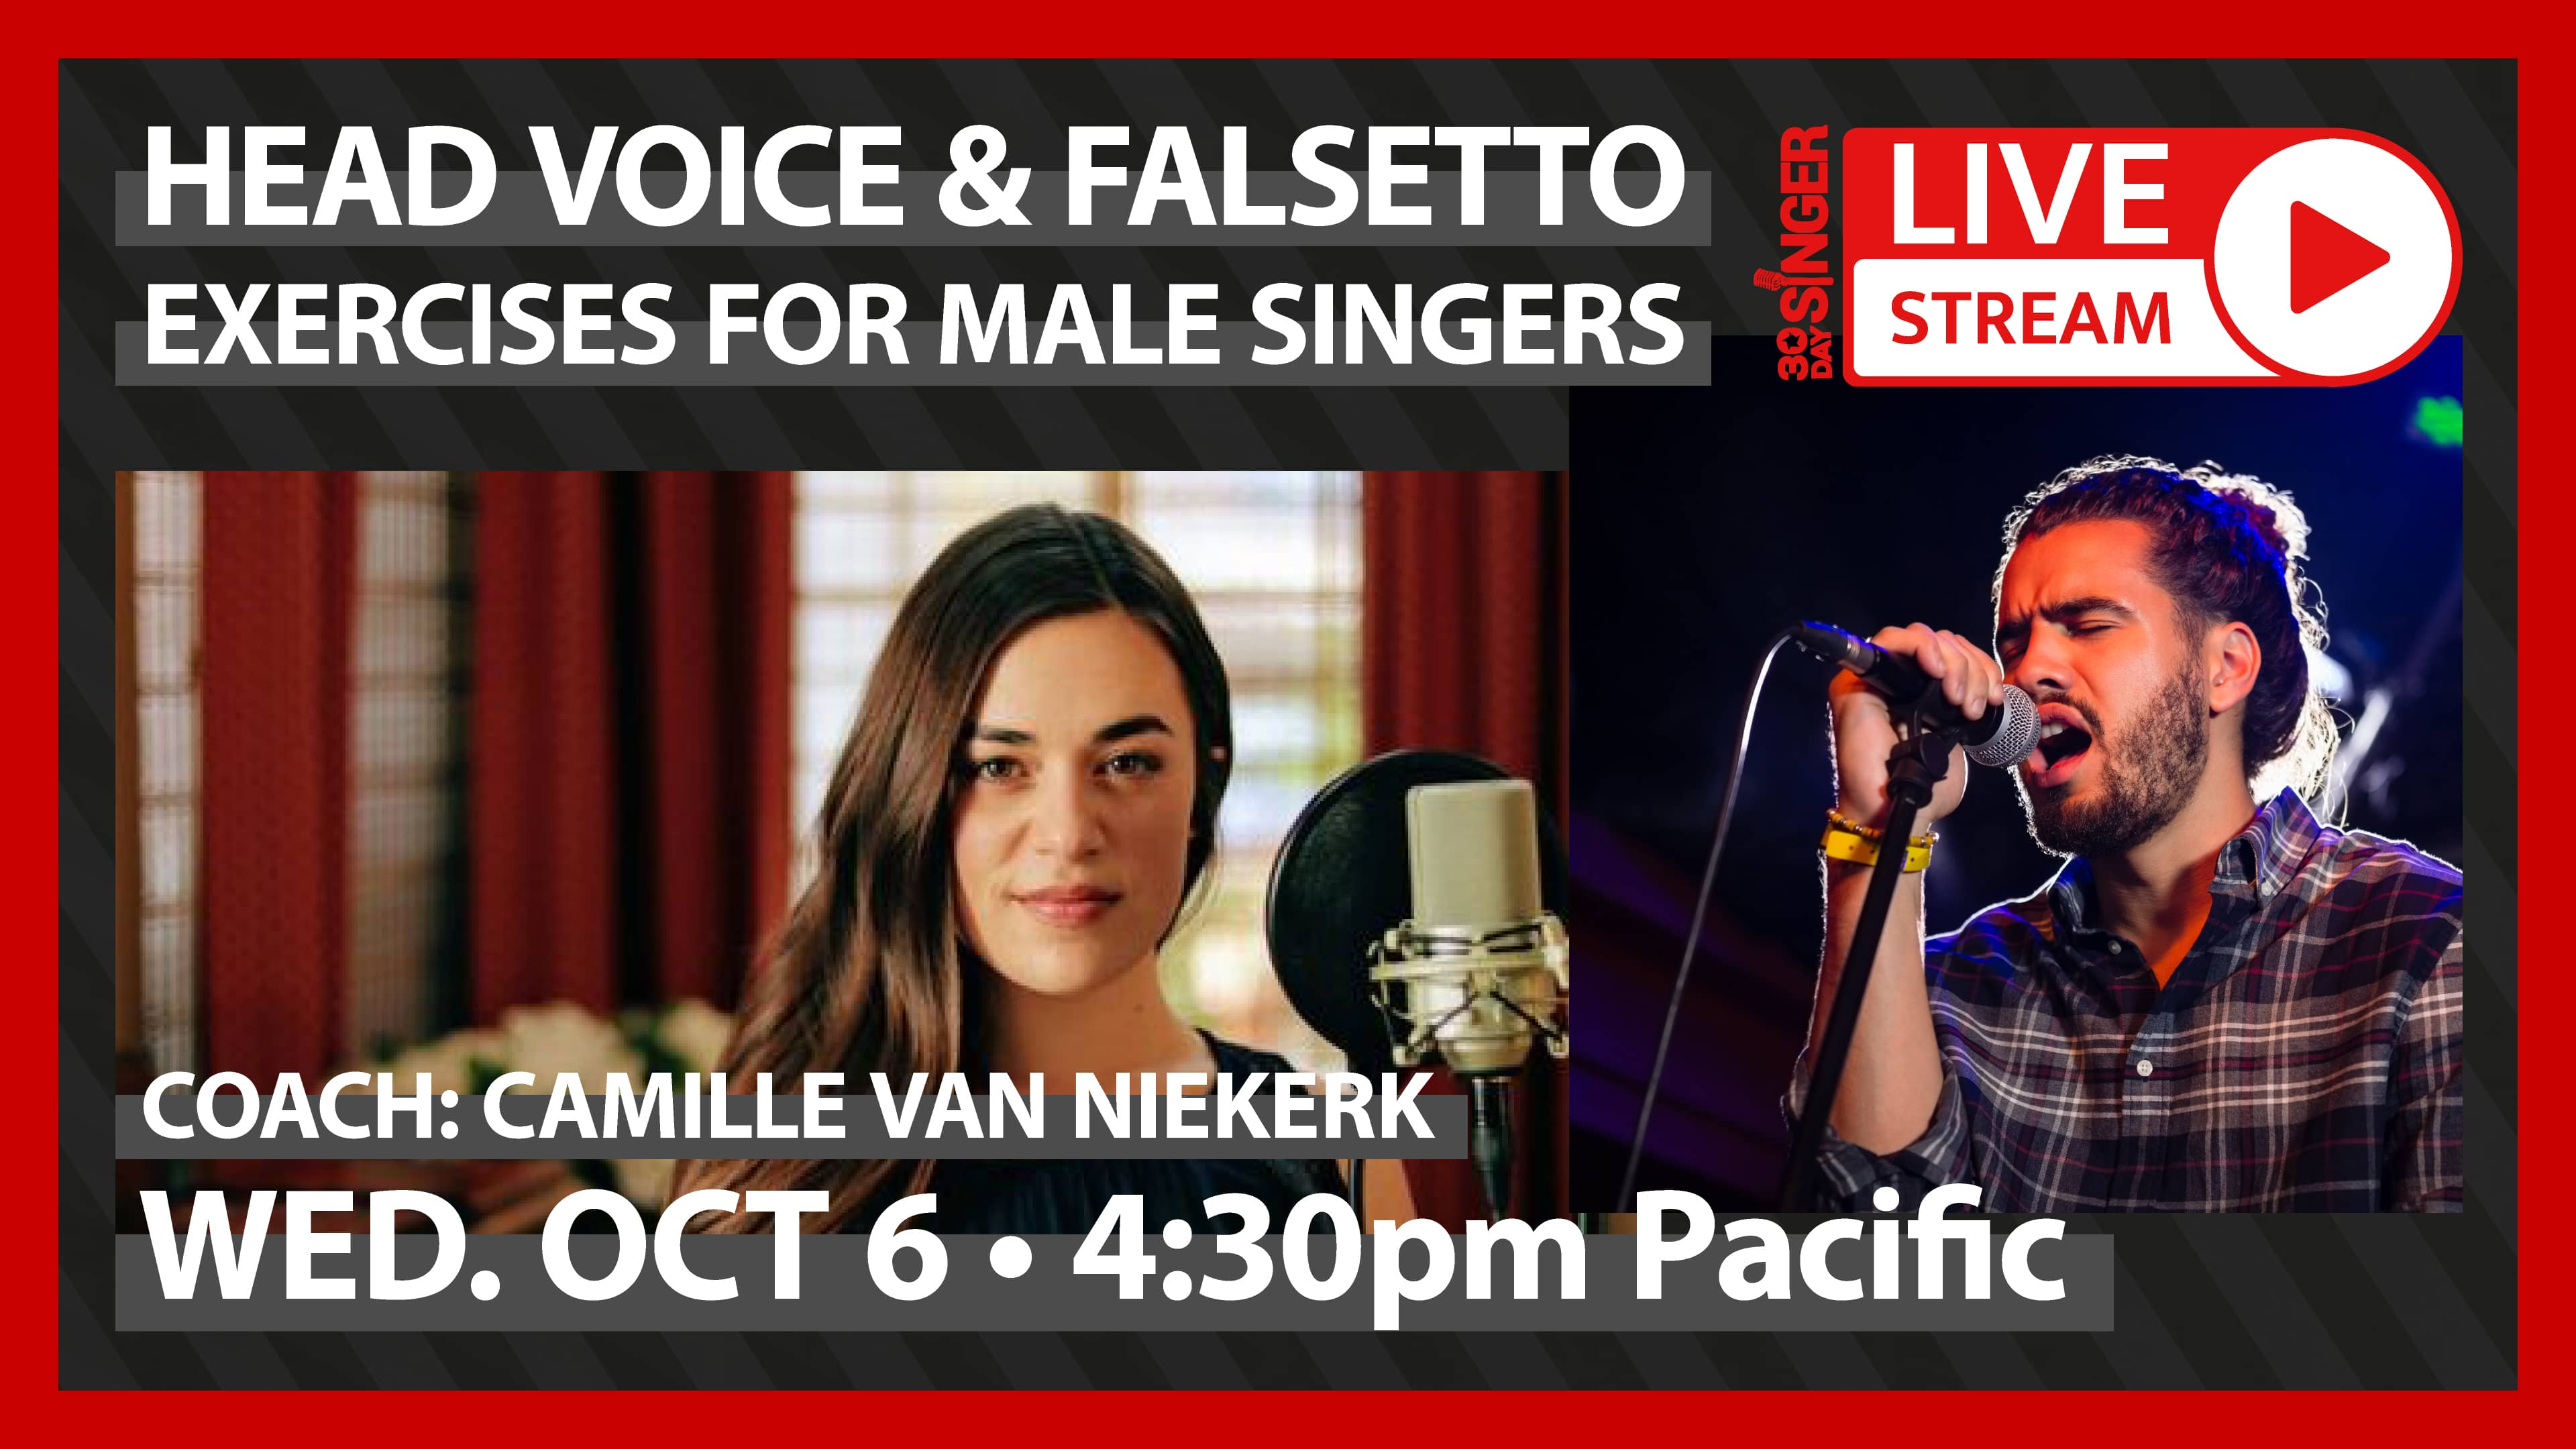 Head Voice & Falsetto Exercises For Male Singers